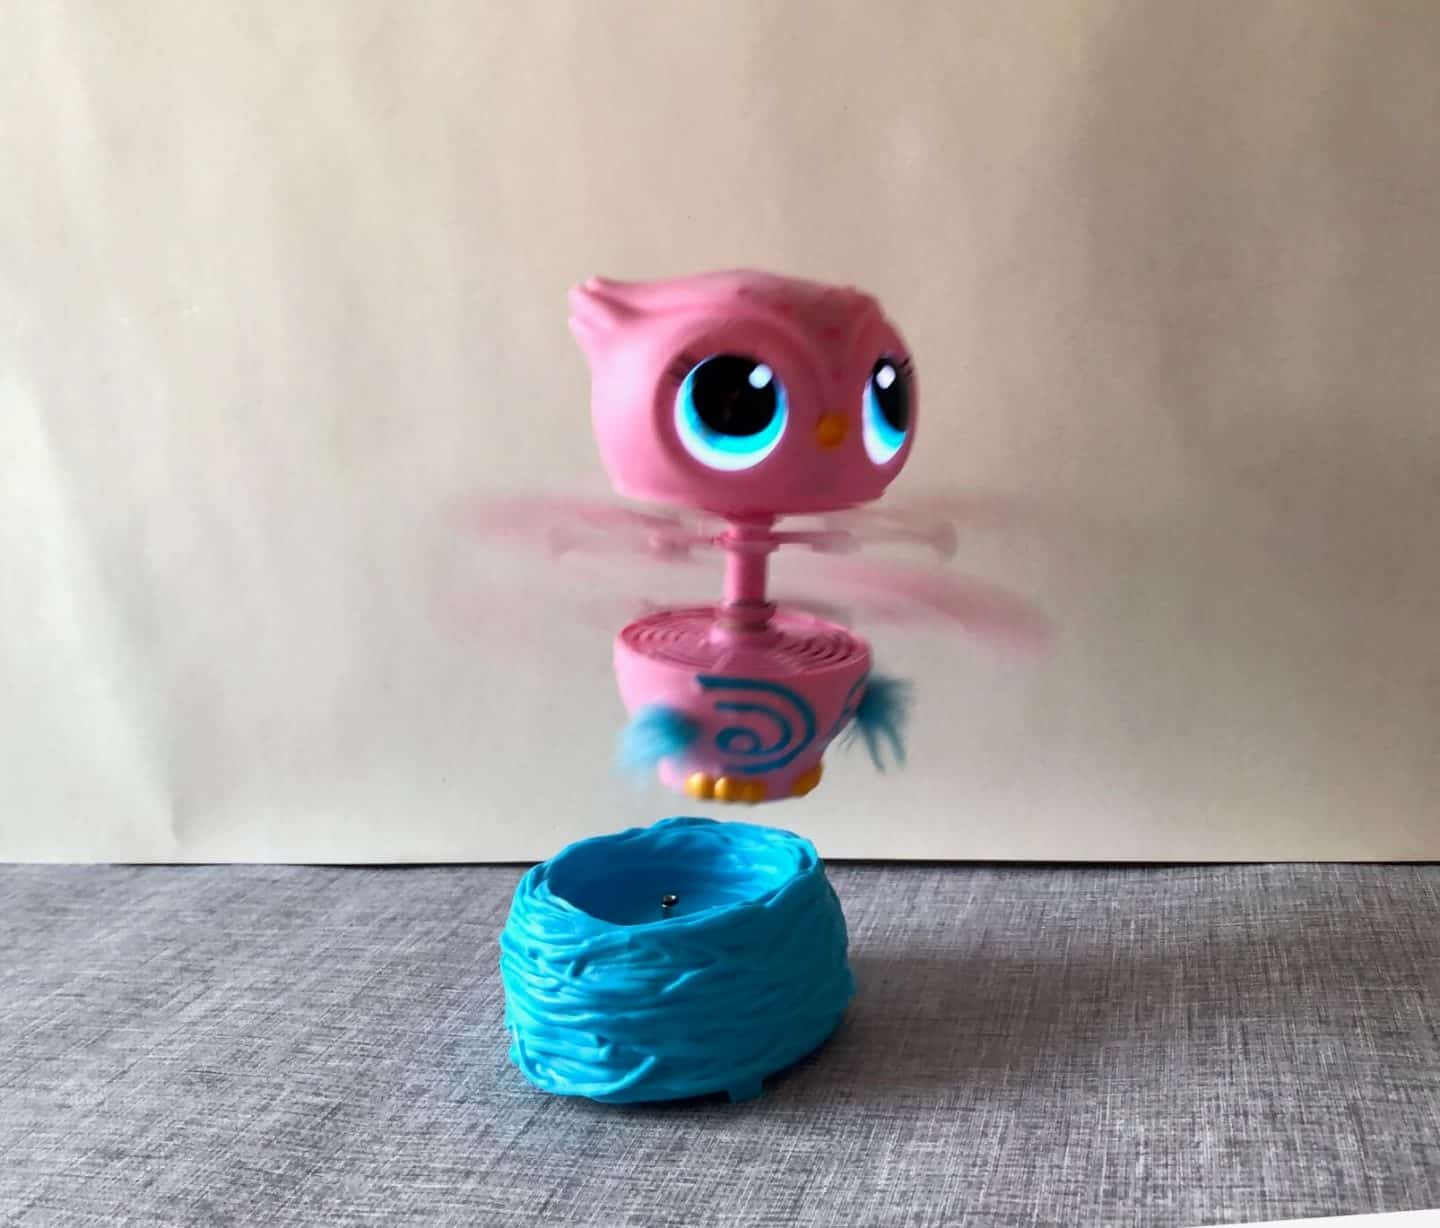 Owleez Interactive Toy leaving her nest to fly